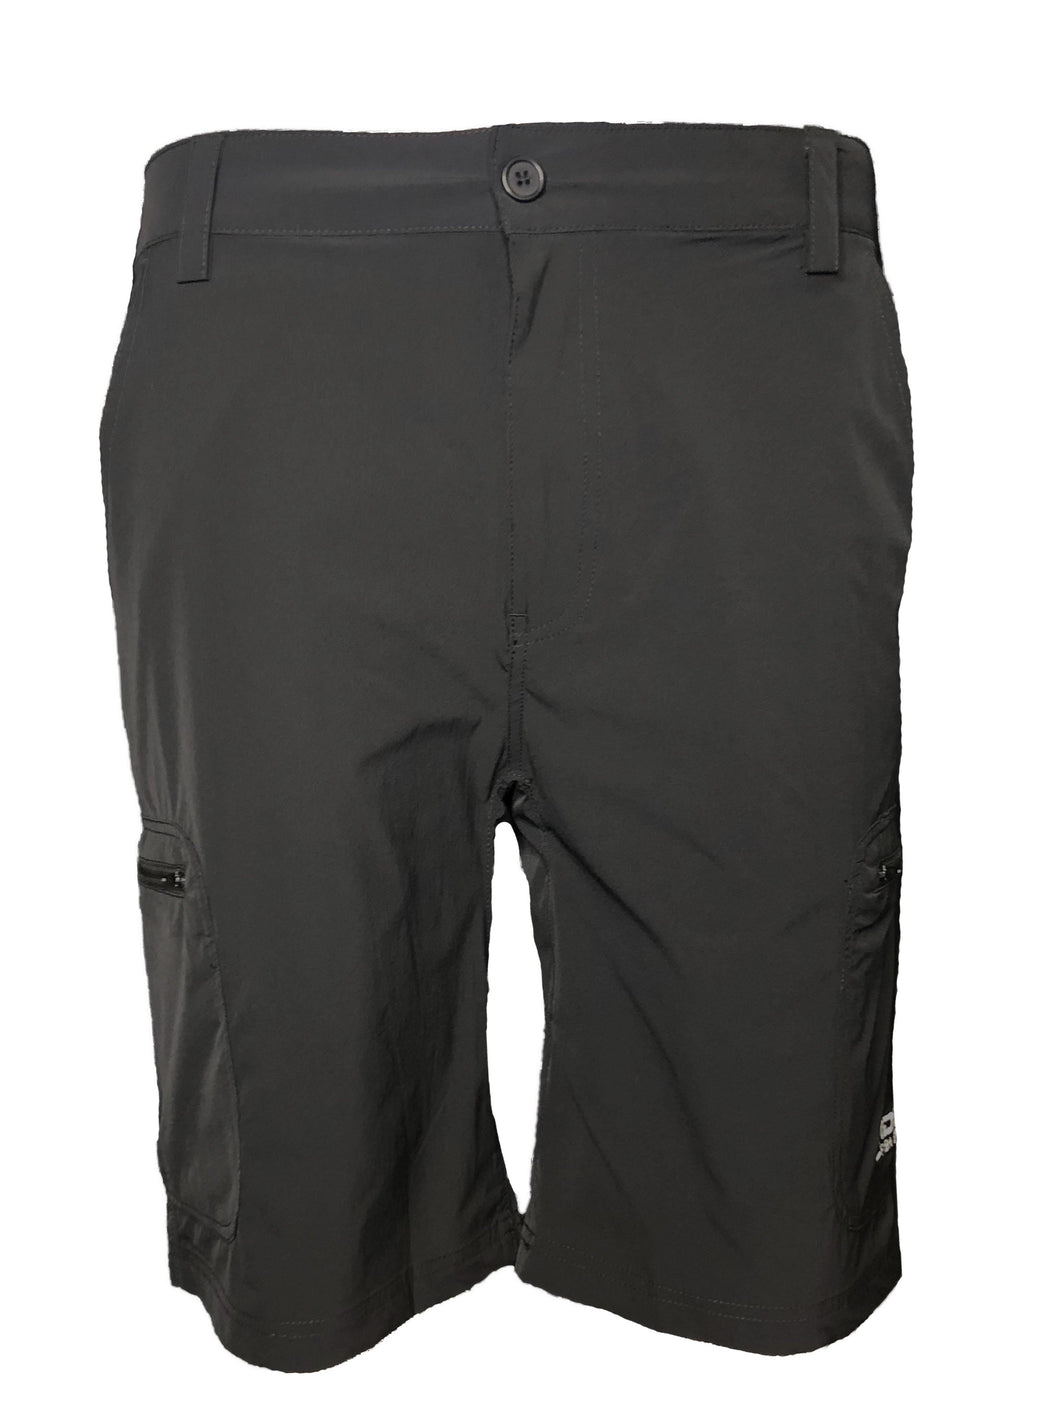 Outrigger High Performance Fishing Shorts - Hardcore Fish & Game